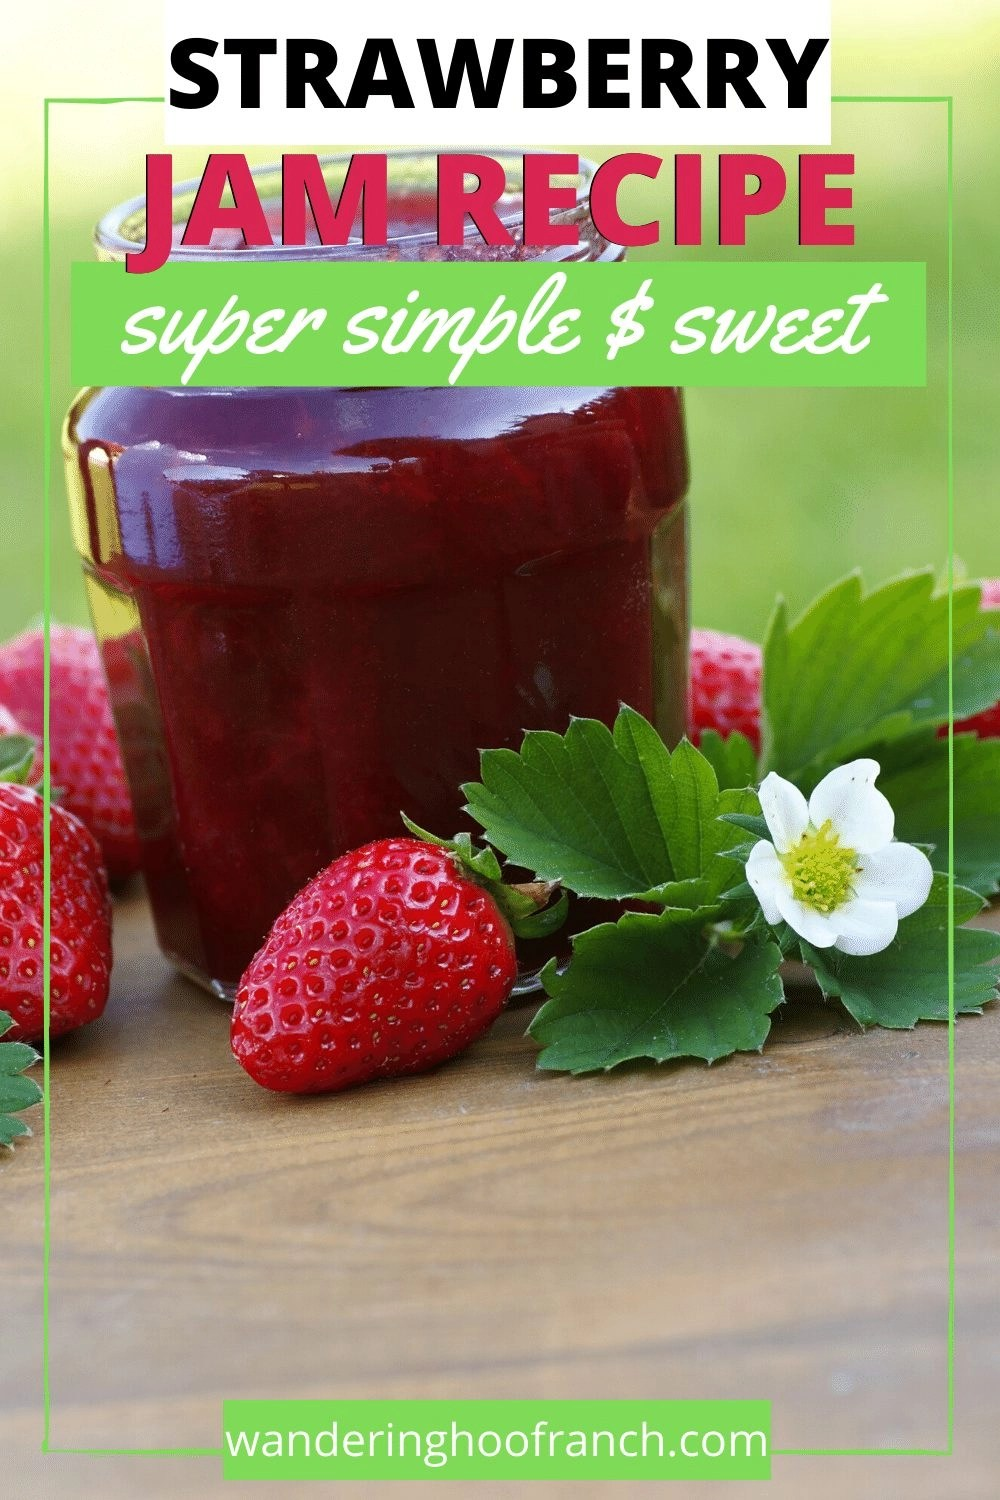 Strawberry jam recipe, super simple and sweet Pinterest pin image